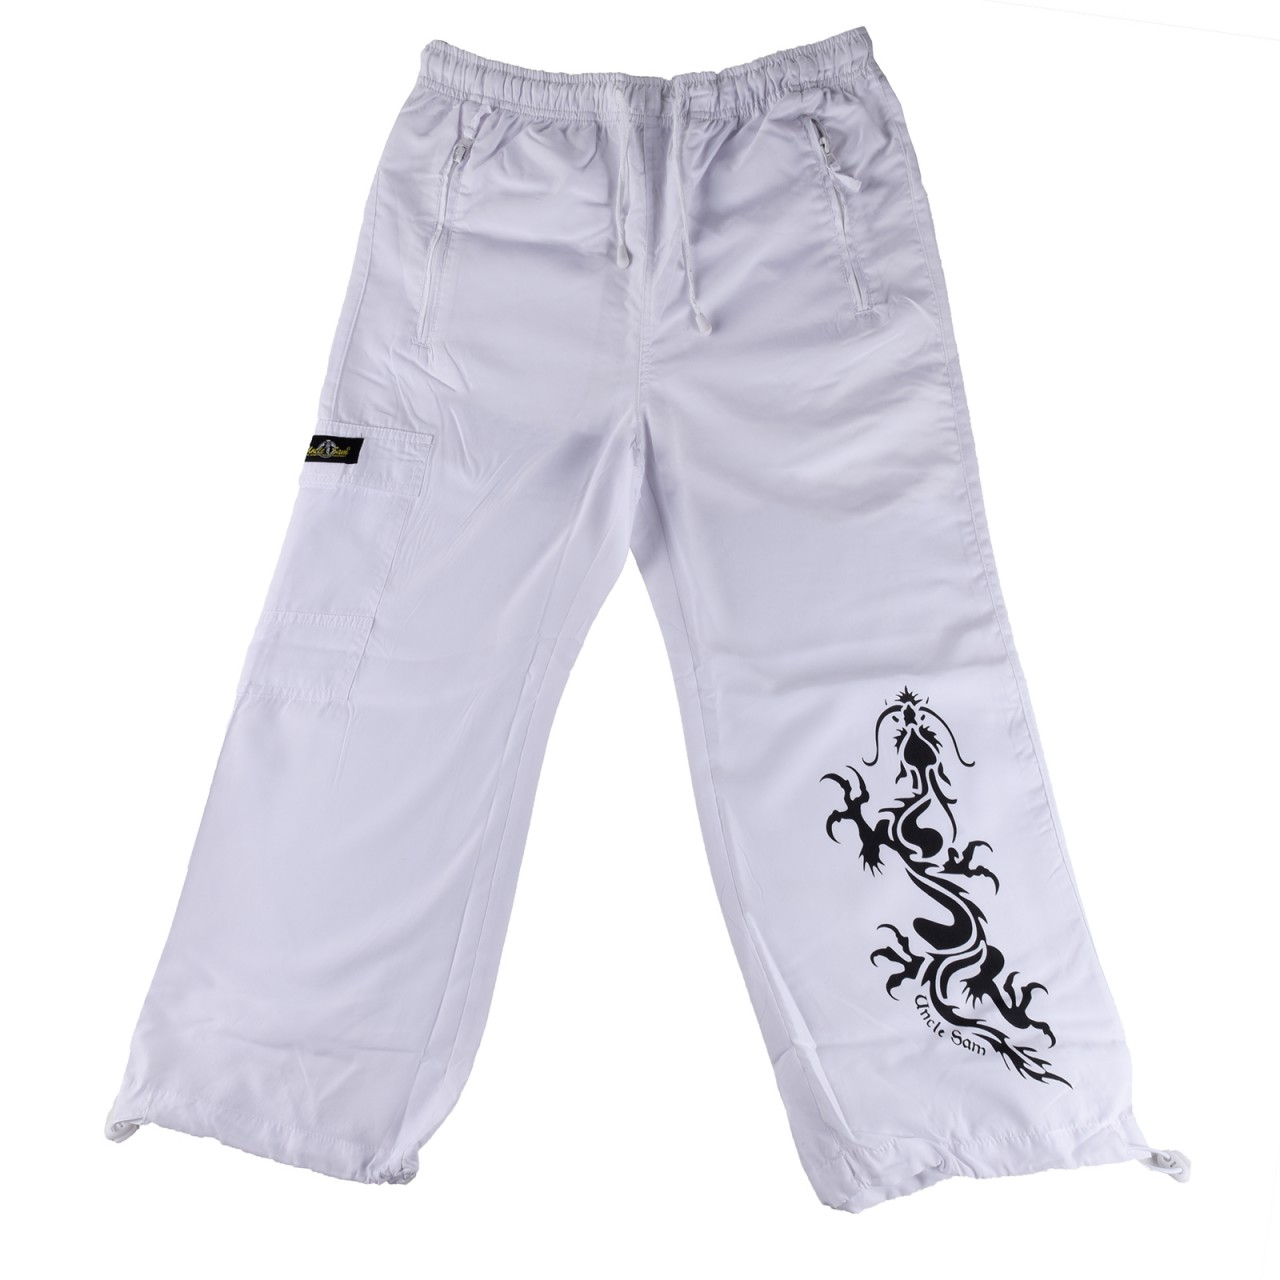 Comfortable Summer Pants by Uncle Sam